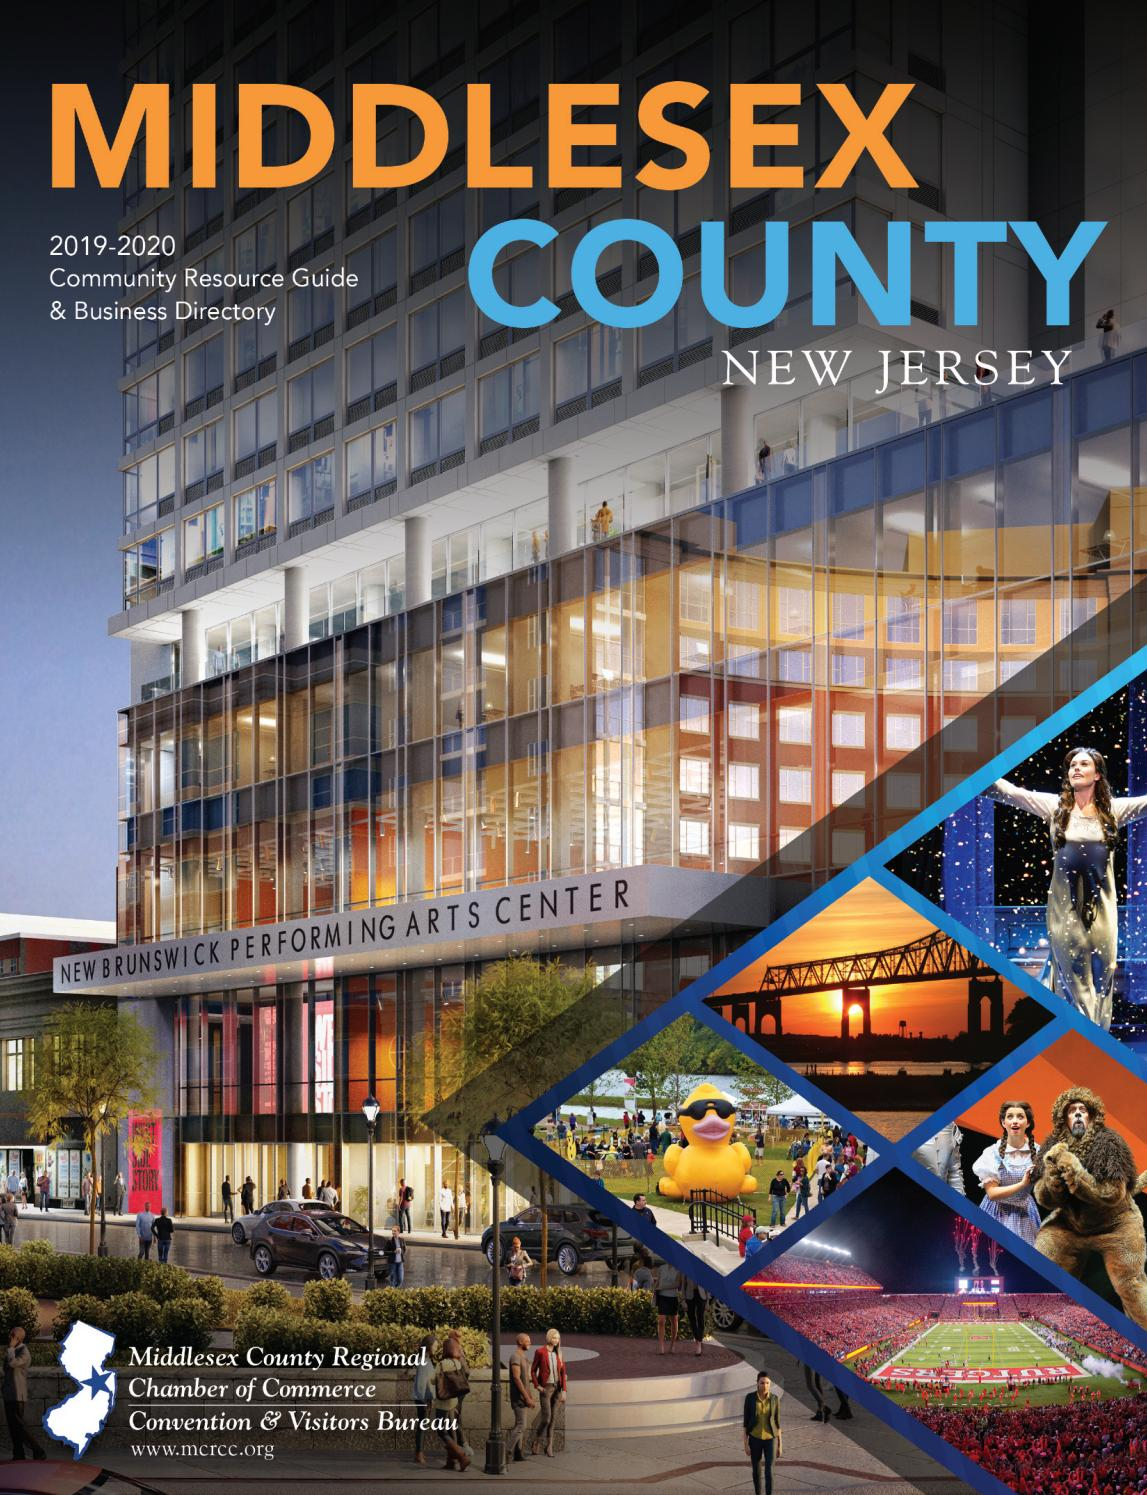 The Middlesex County, New Jersey 2019/20 Community Resource Guide